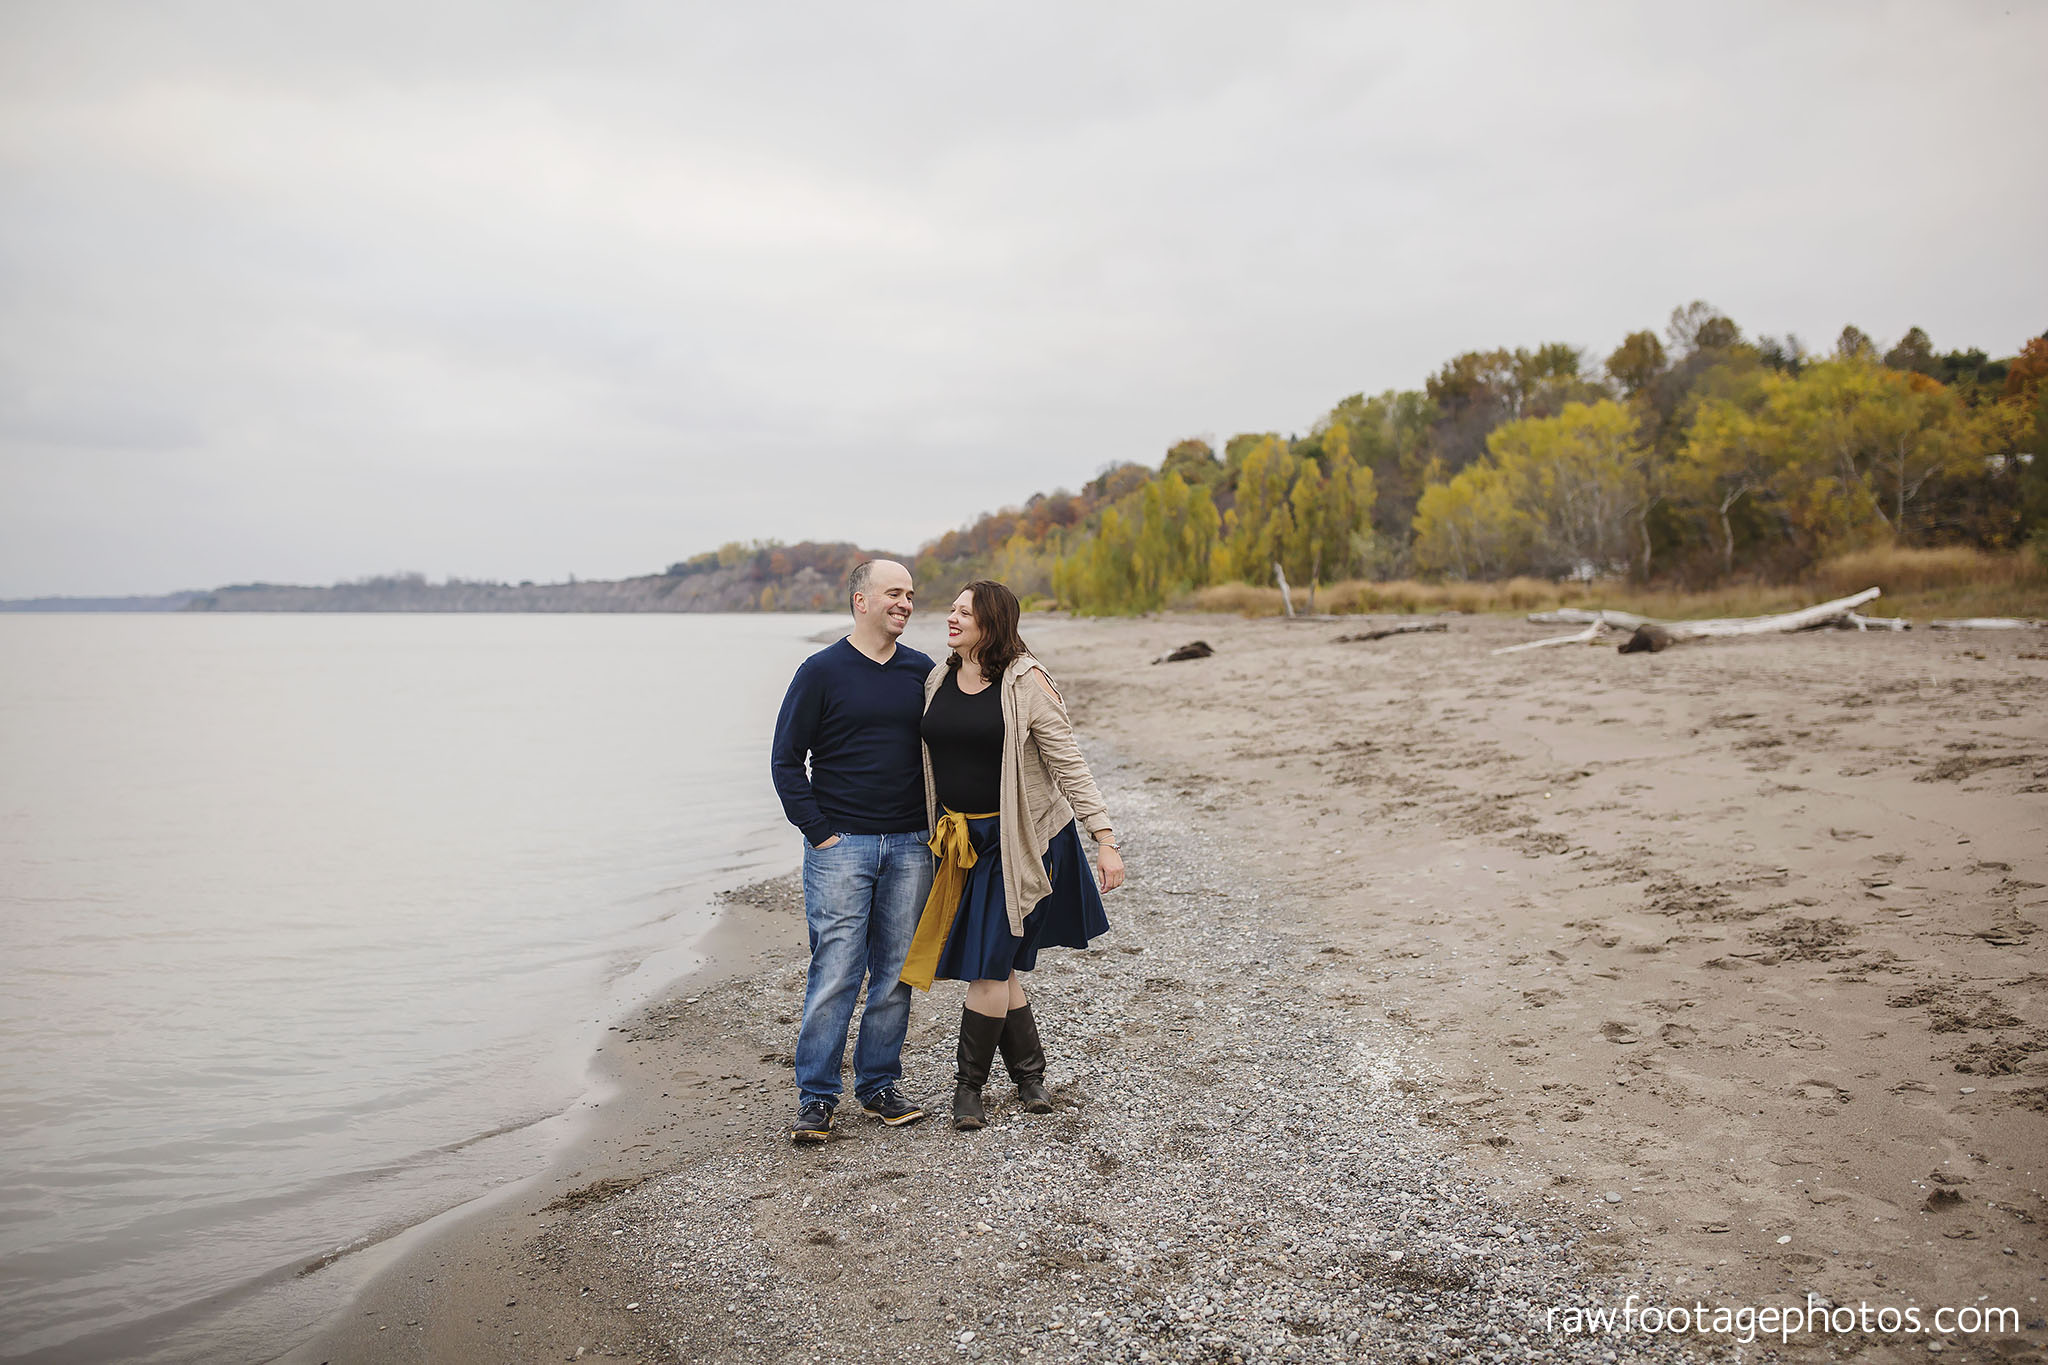 london_ontario_family_photographer-port_stanley_photography-raw_footage_photography-family_photos-beach_photos-fall_family_photos-lifestyle_family_photography-candid_photographer014.jpg